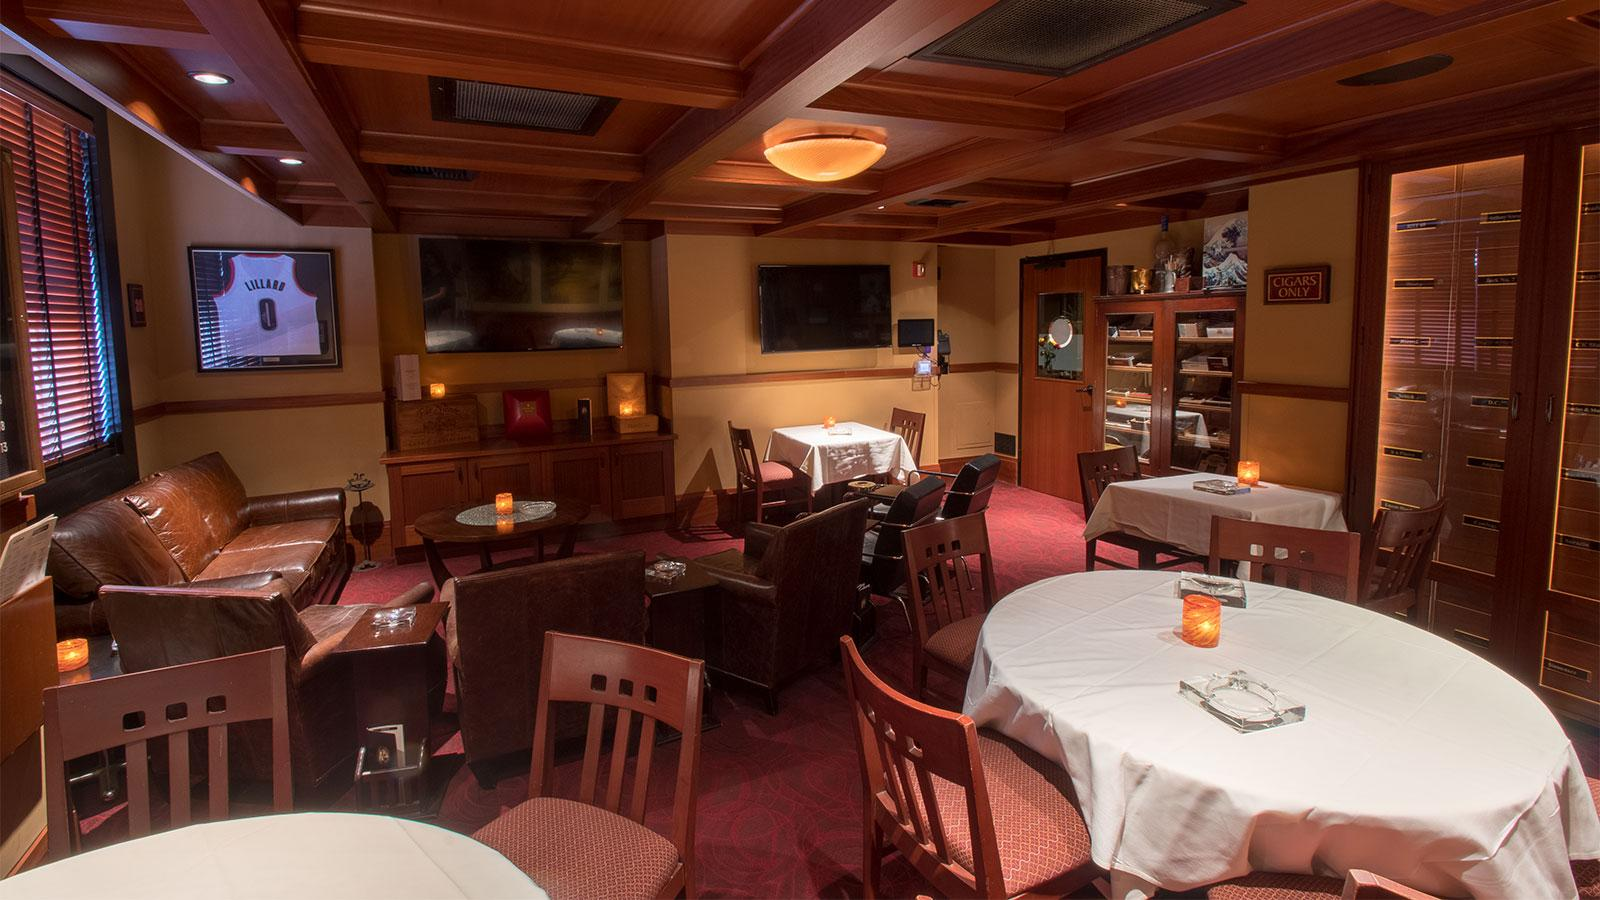 In the lounge, which seats 25, you'll be able to enjoy a cigar and a drink and watch the game.